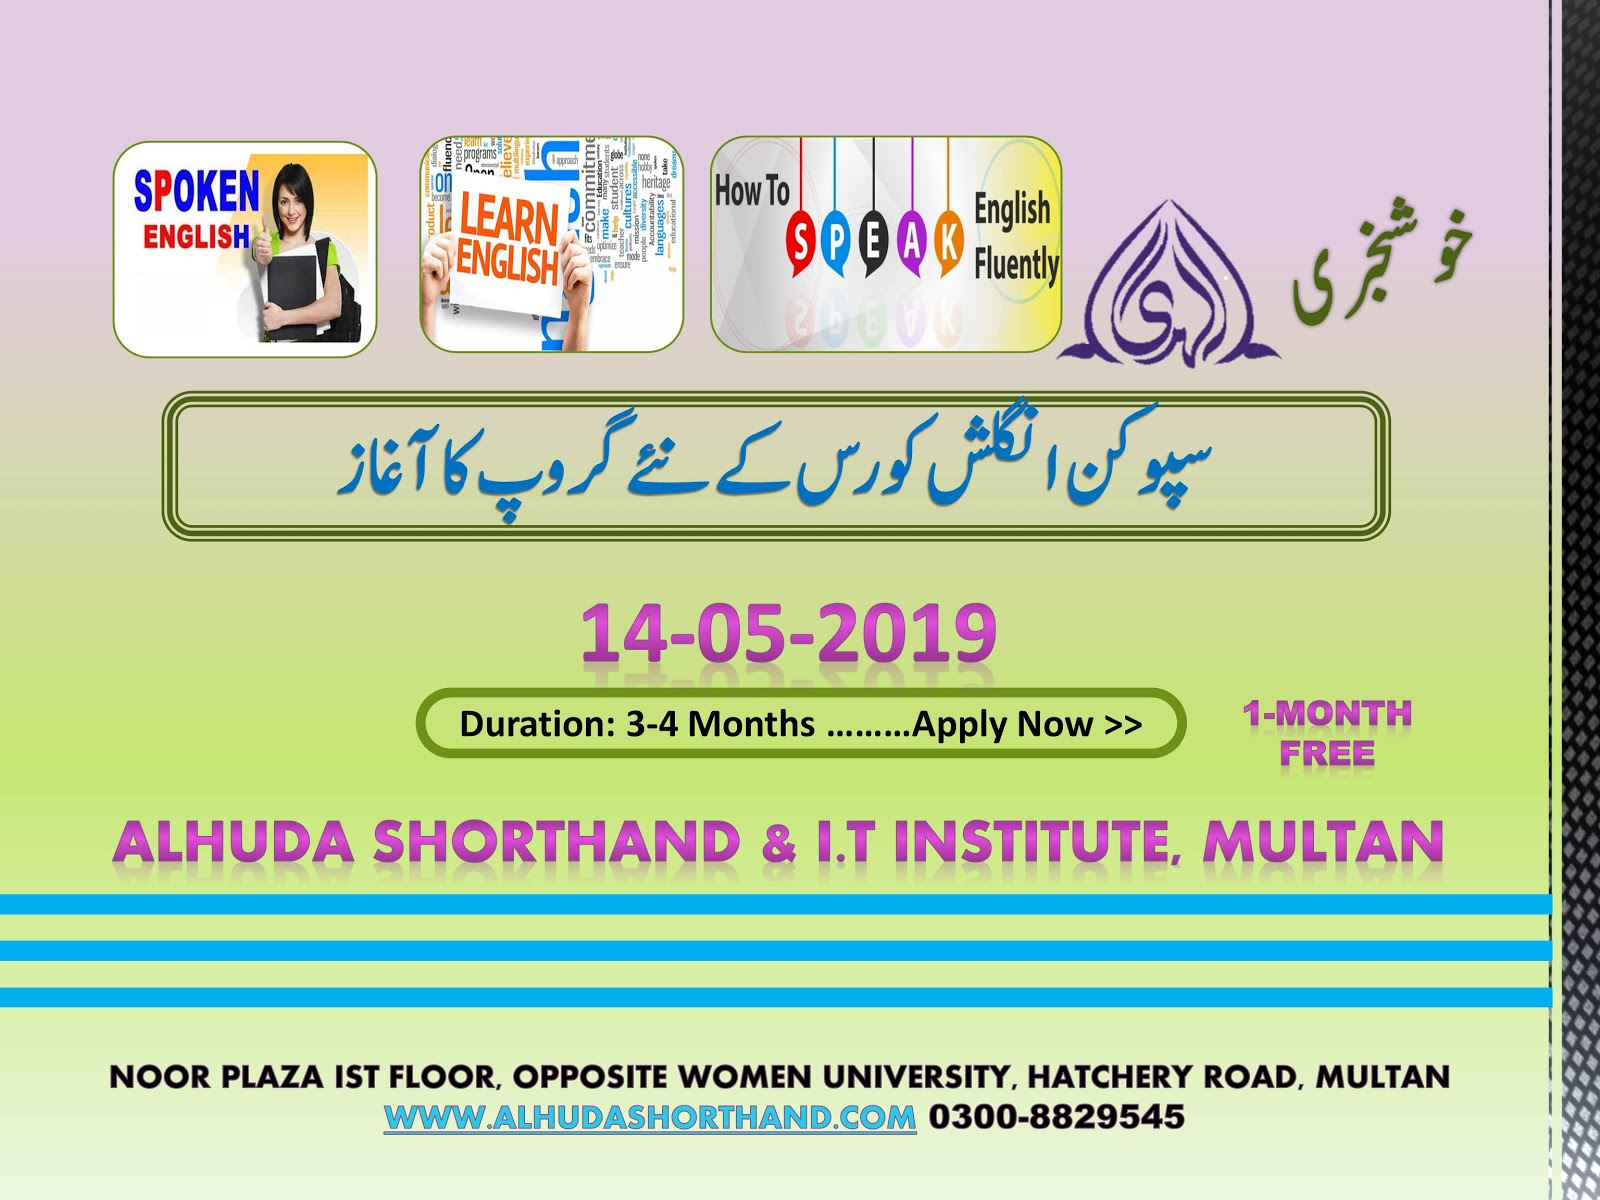 Alhuda Shorthand,Typing & I T Institute, Multan: Free Spoken